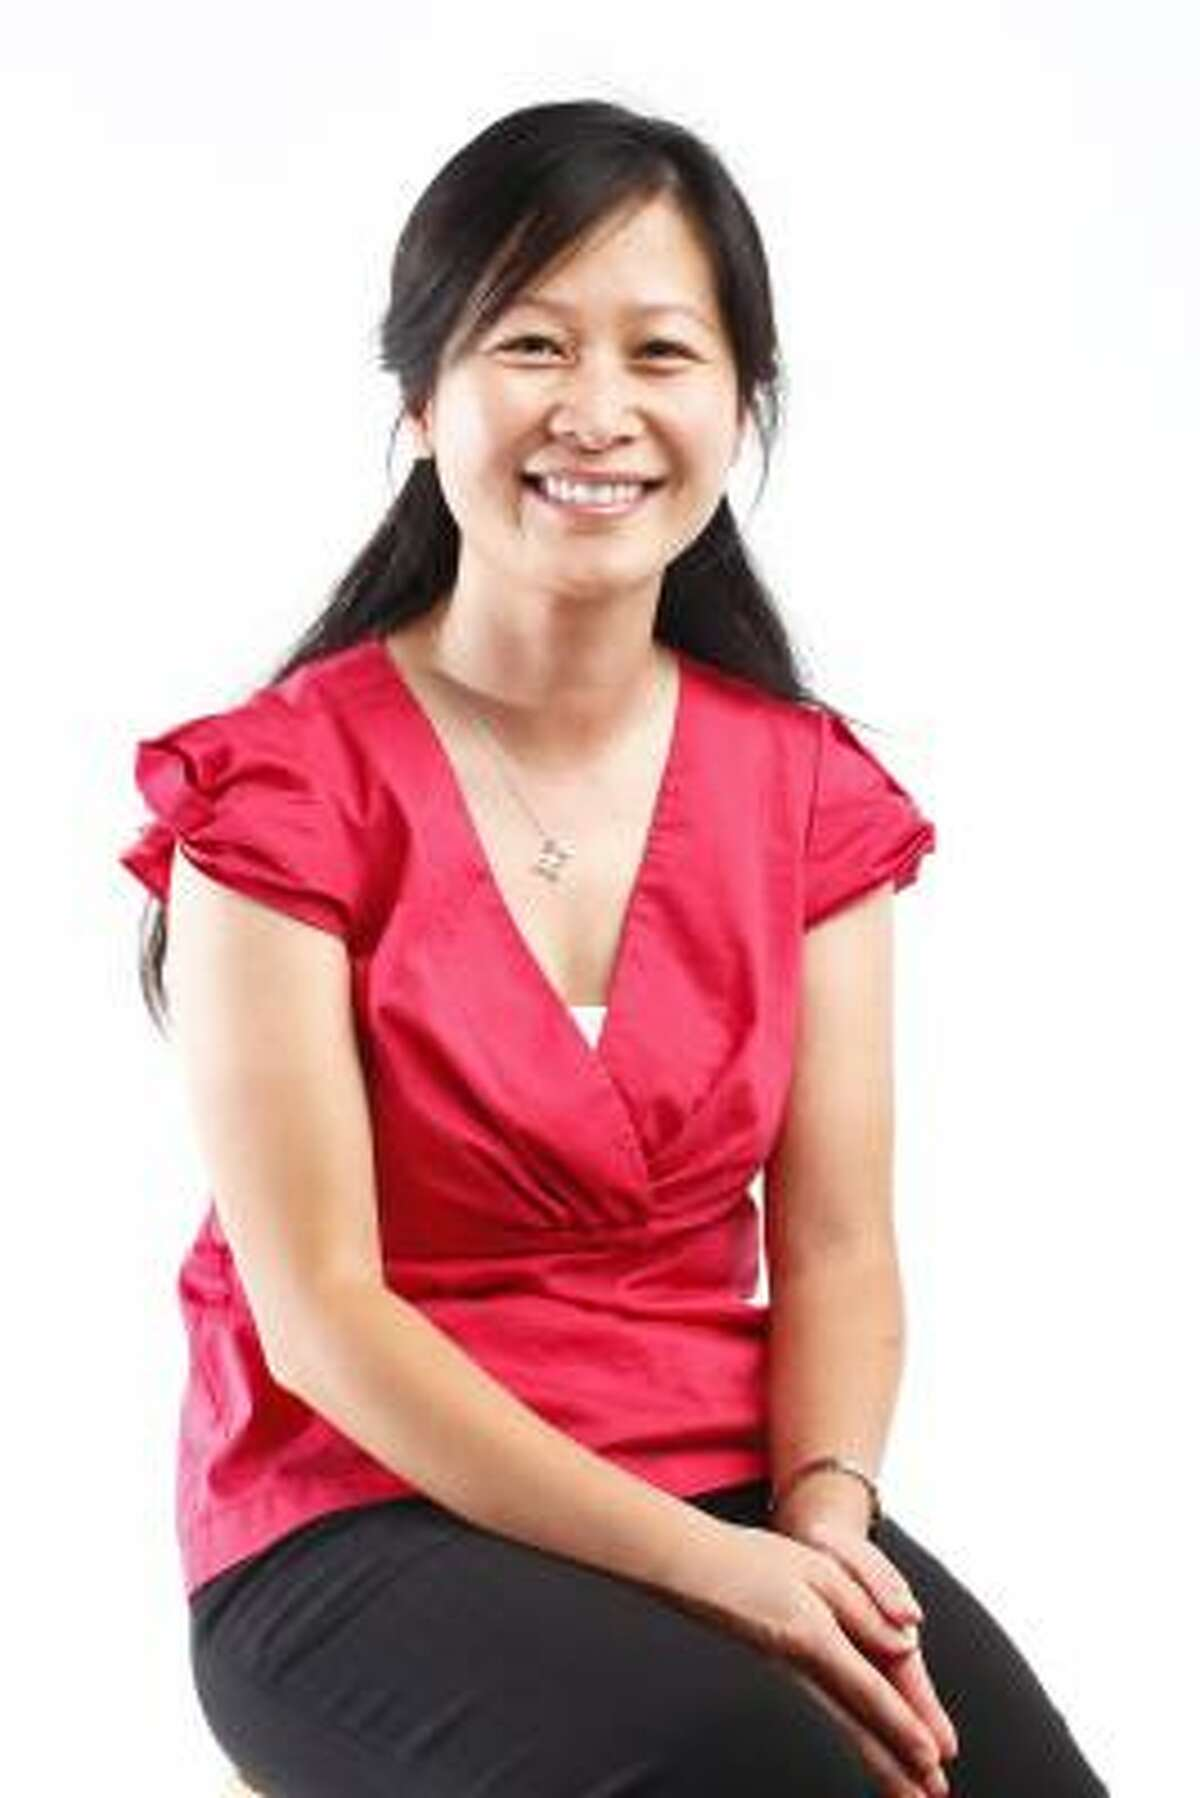 Attorney An Phong Vo's work with asylum-seekers is now taking her to Bangkok.